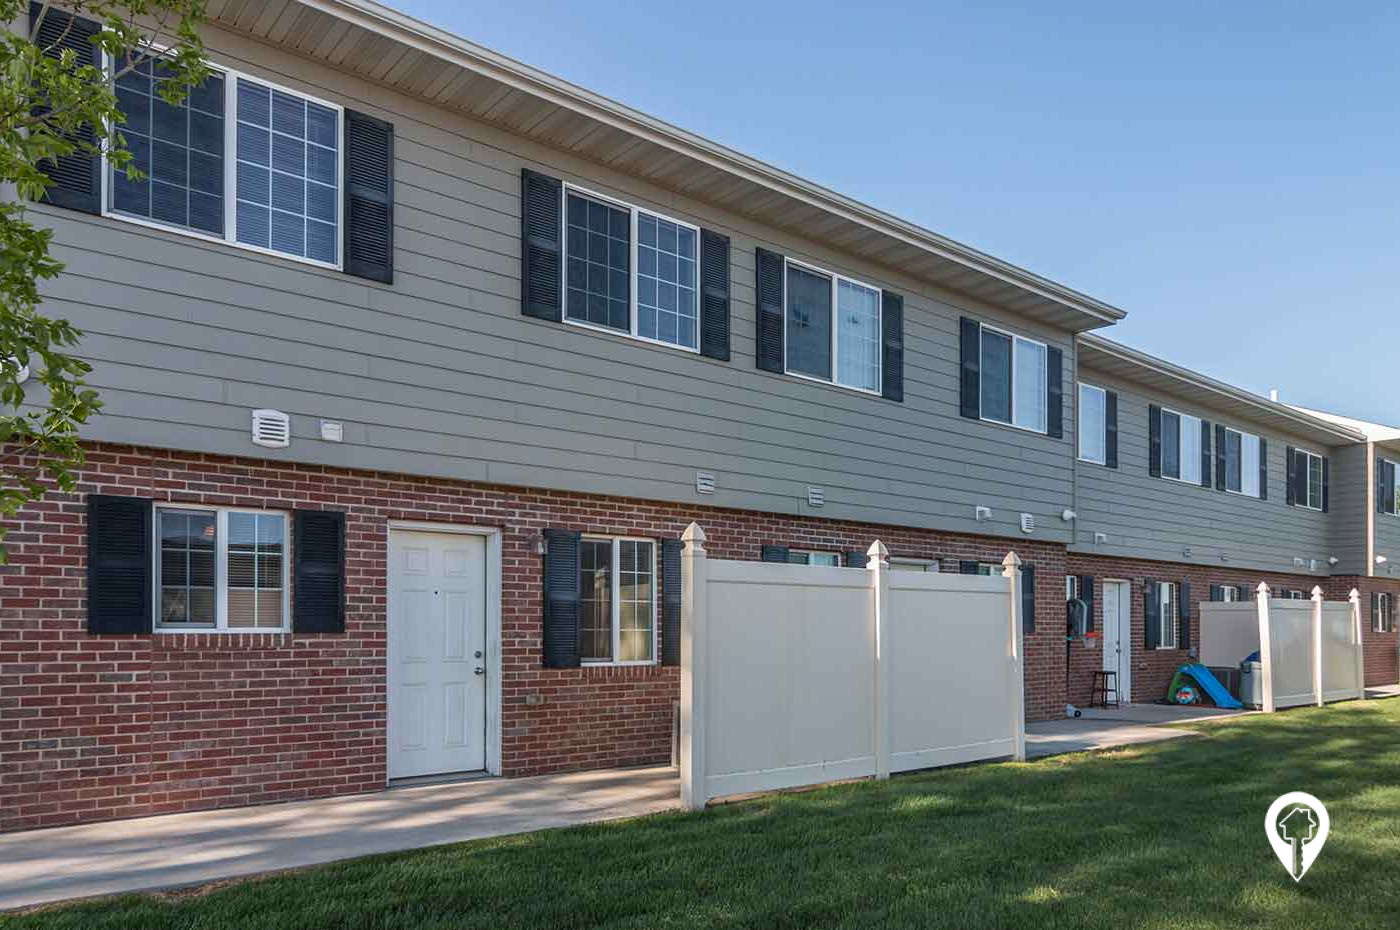 HighPointe Townhomes